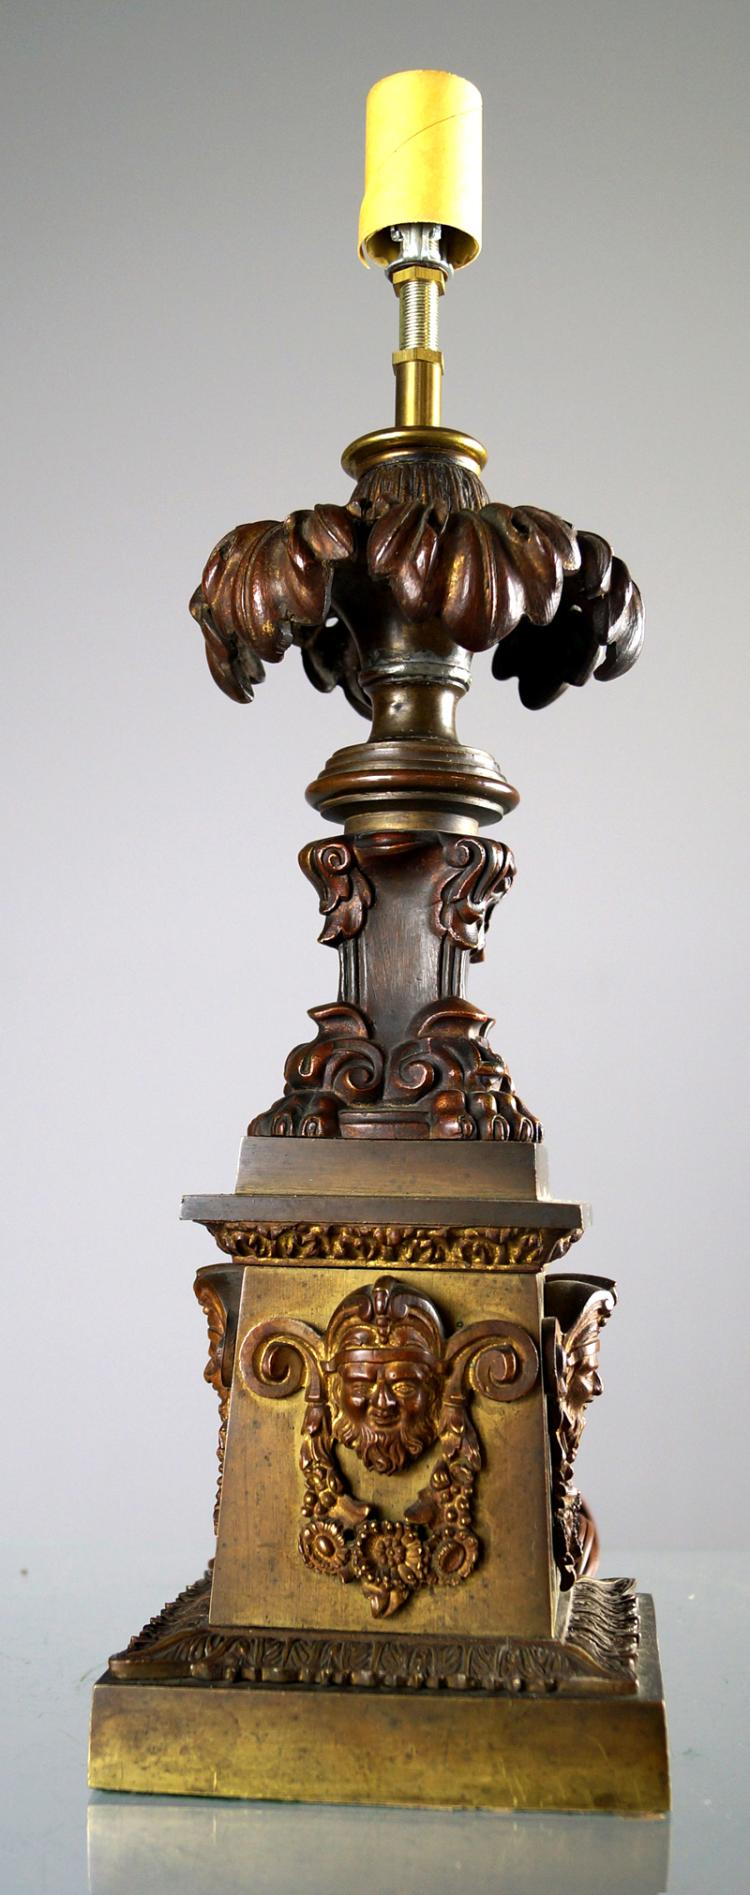 CLASSICAL STYLE BRONZE LAMP BASE. HEIGHT 12